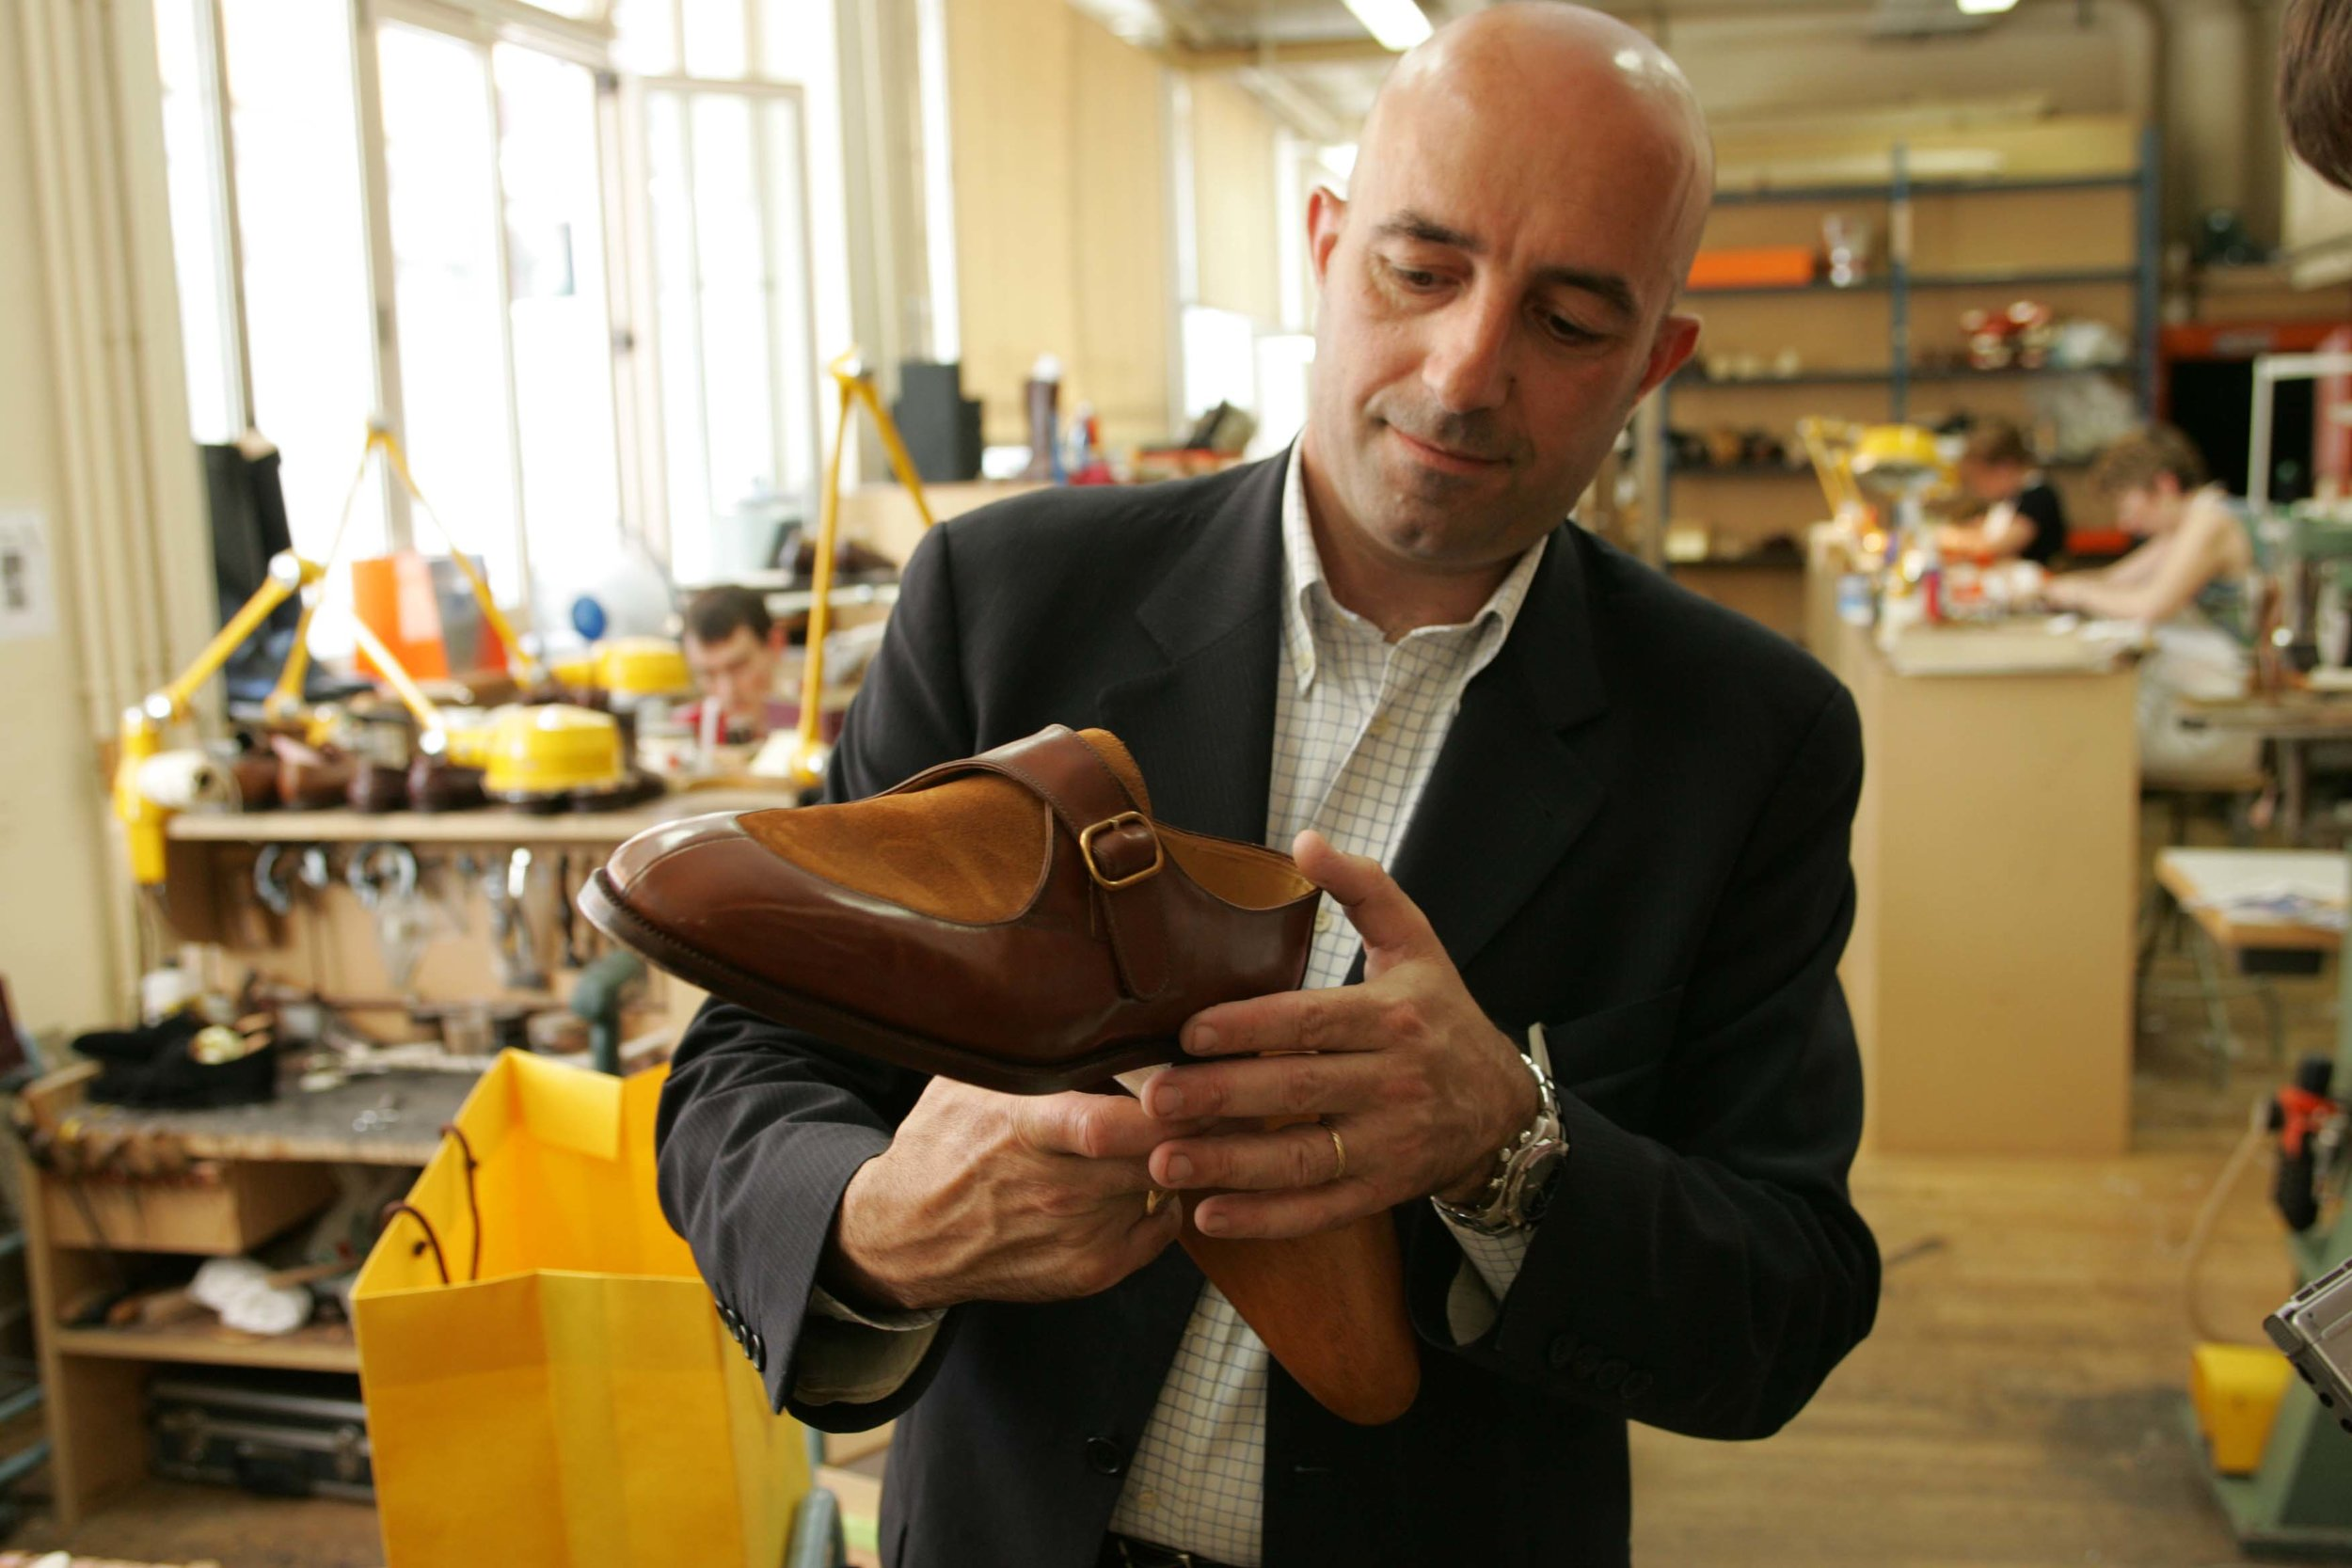 Philippe Atienza – who was, at the time, head of the Hermès-owned John Lobb Paris bespoke operations – inspecting David Dowsey's bespoke shoes in the Paris workshop in which they were made. Photo by David Wright from   A Le Mans Diary  .